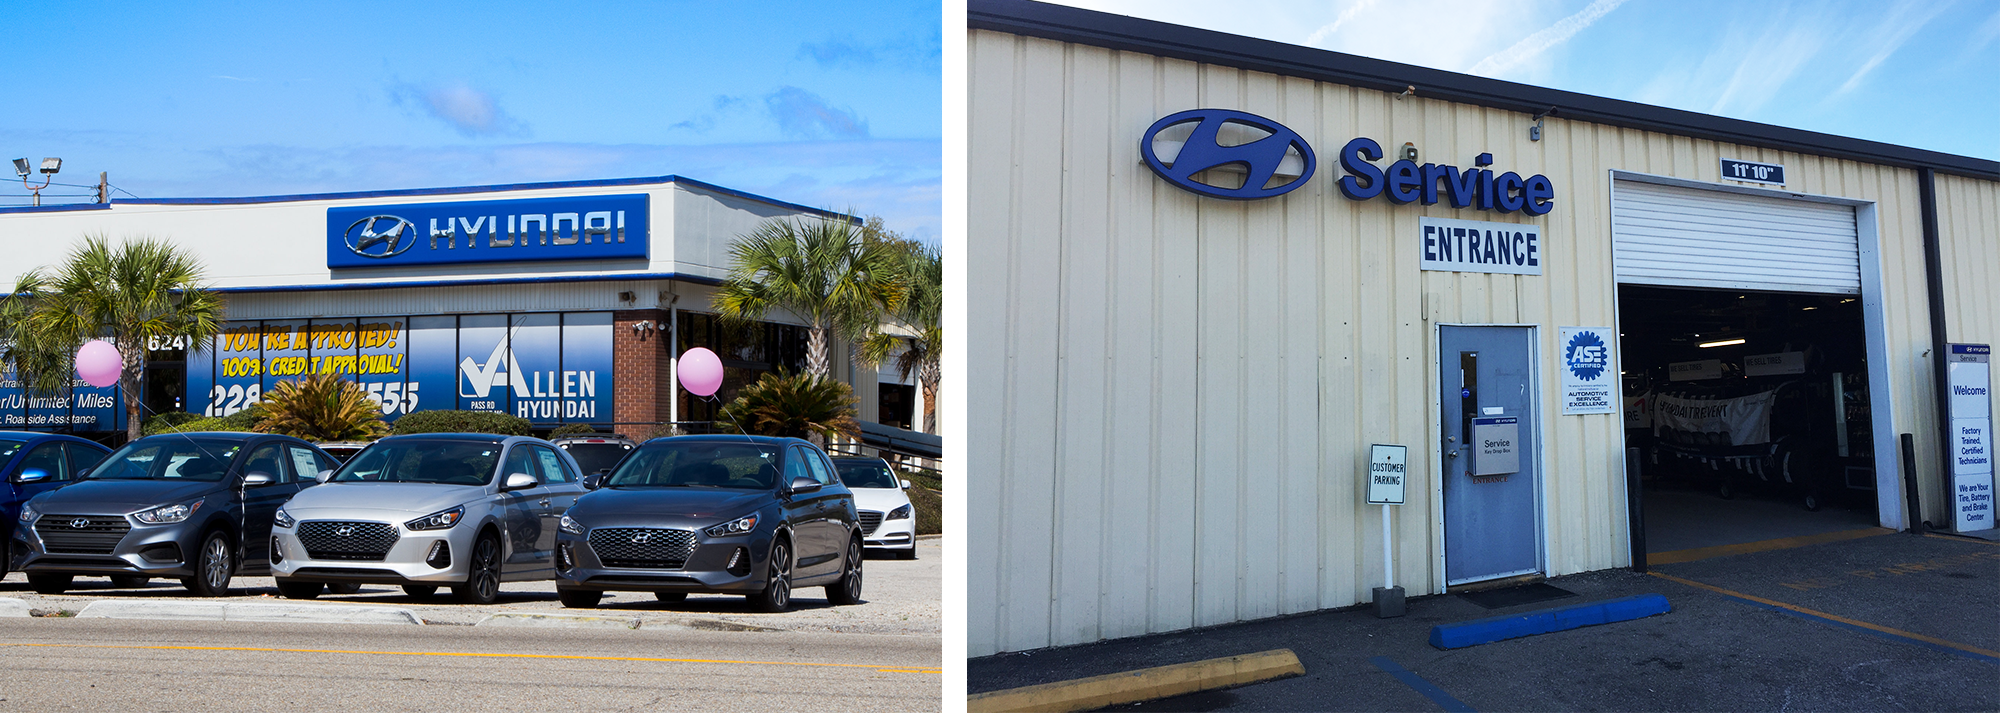 If Youu0027re Looking For Service In Gulfport From Your Gulfport Car  Dealership, Know That Allen Hyundaiu0027s Team Of Technicians Are  Factory Trained And Ready To ...